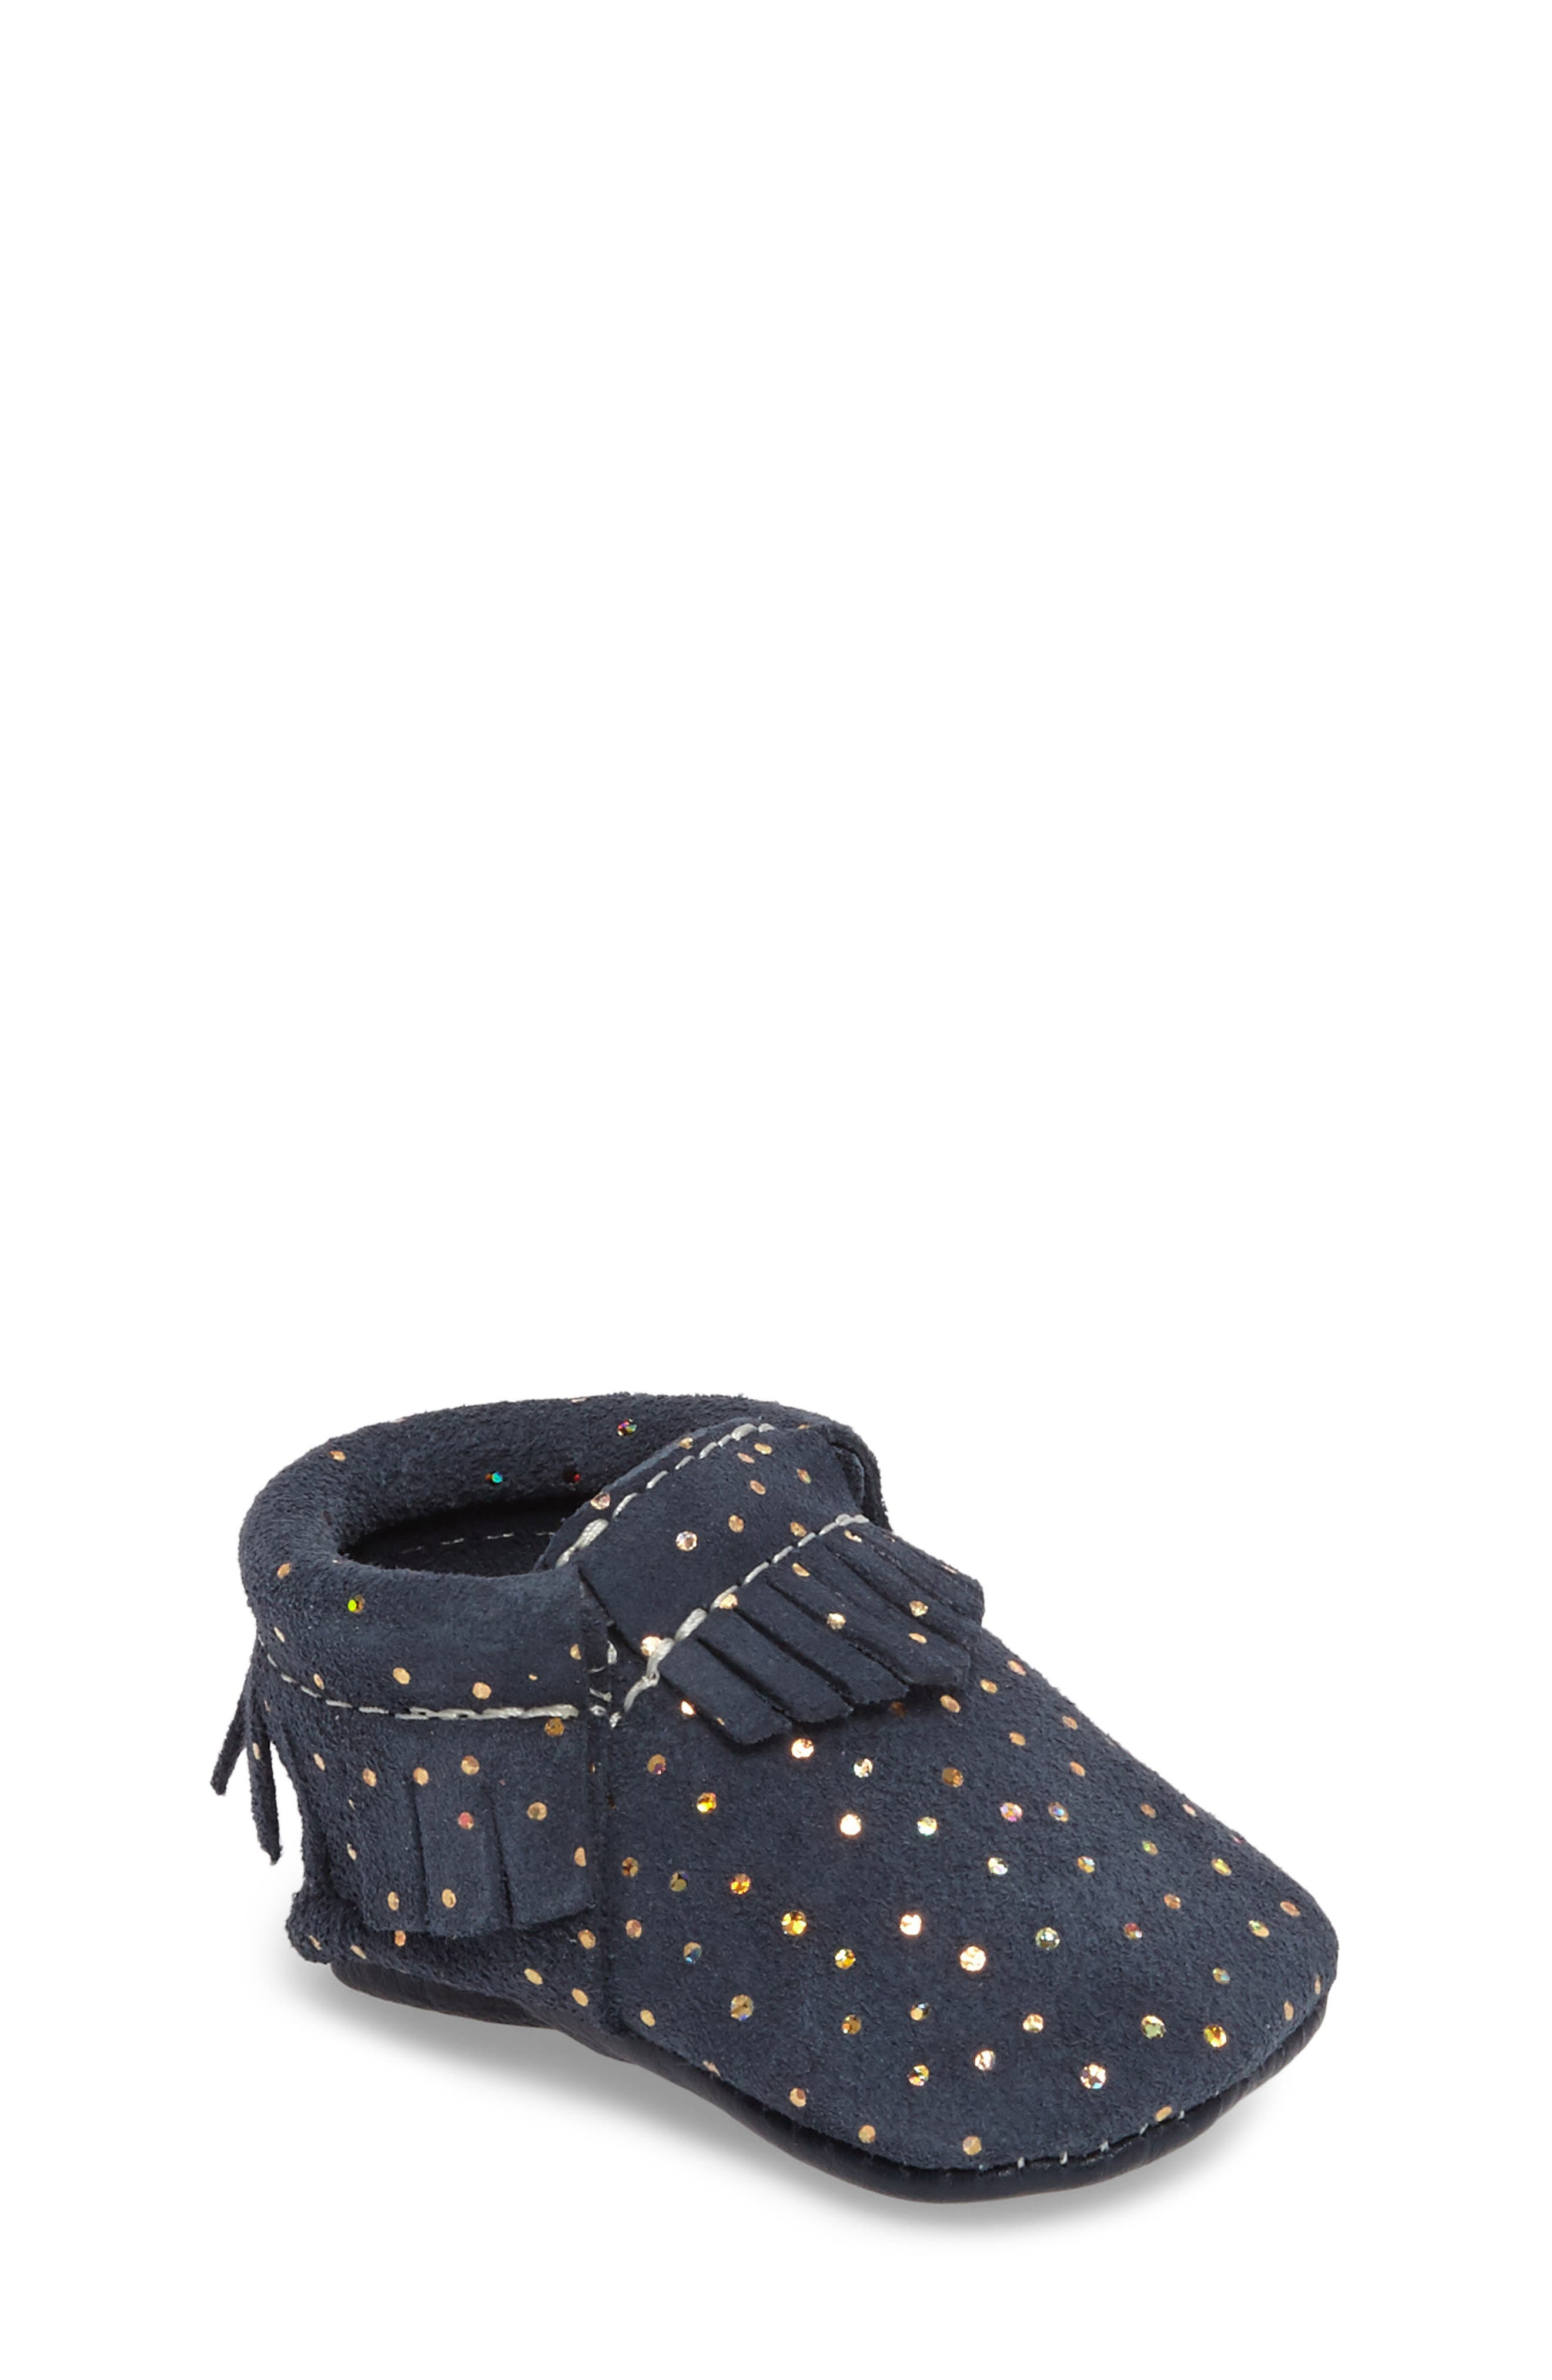 Freshly Picked Confetti Print Moccasin (Baby)